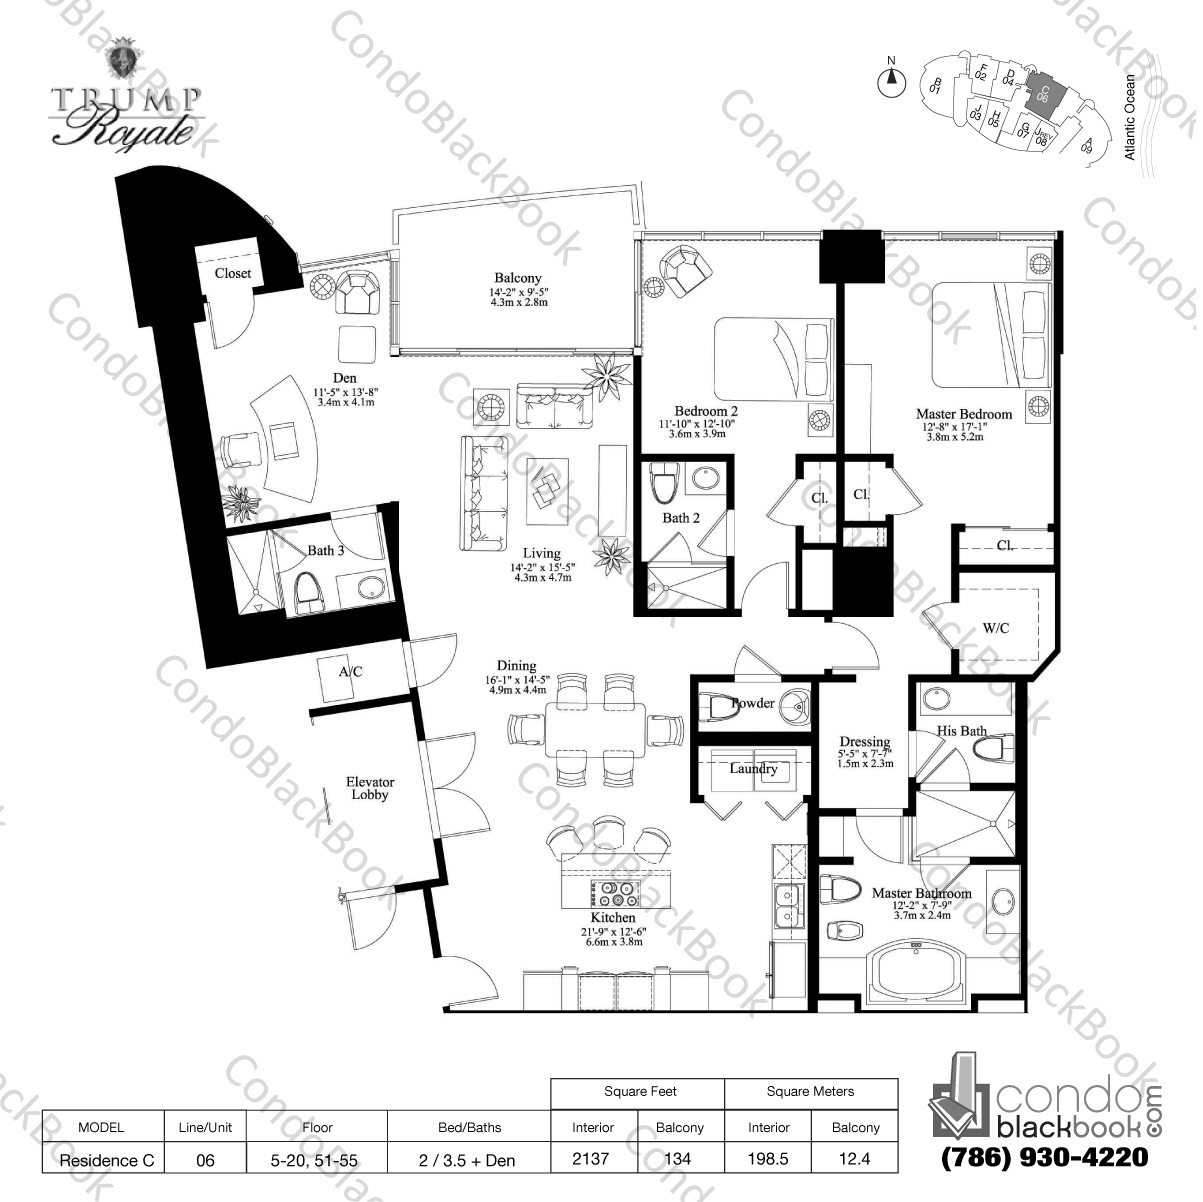 Floor plan for Trump Royale Sunny Isles Beach, model Residence C, line 06, 2 / 3.5 + Den bedrooms, 2137 sq ft